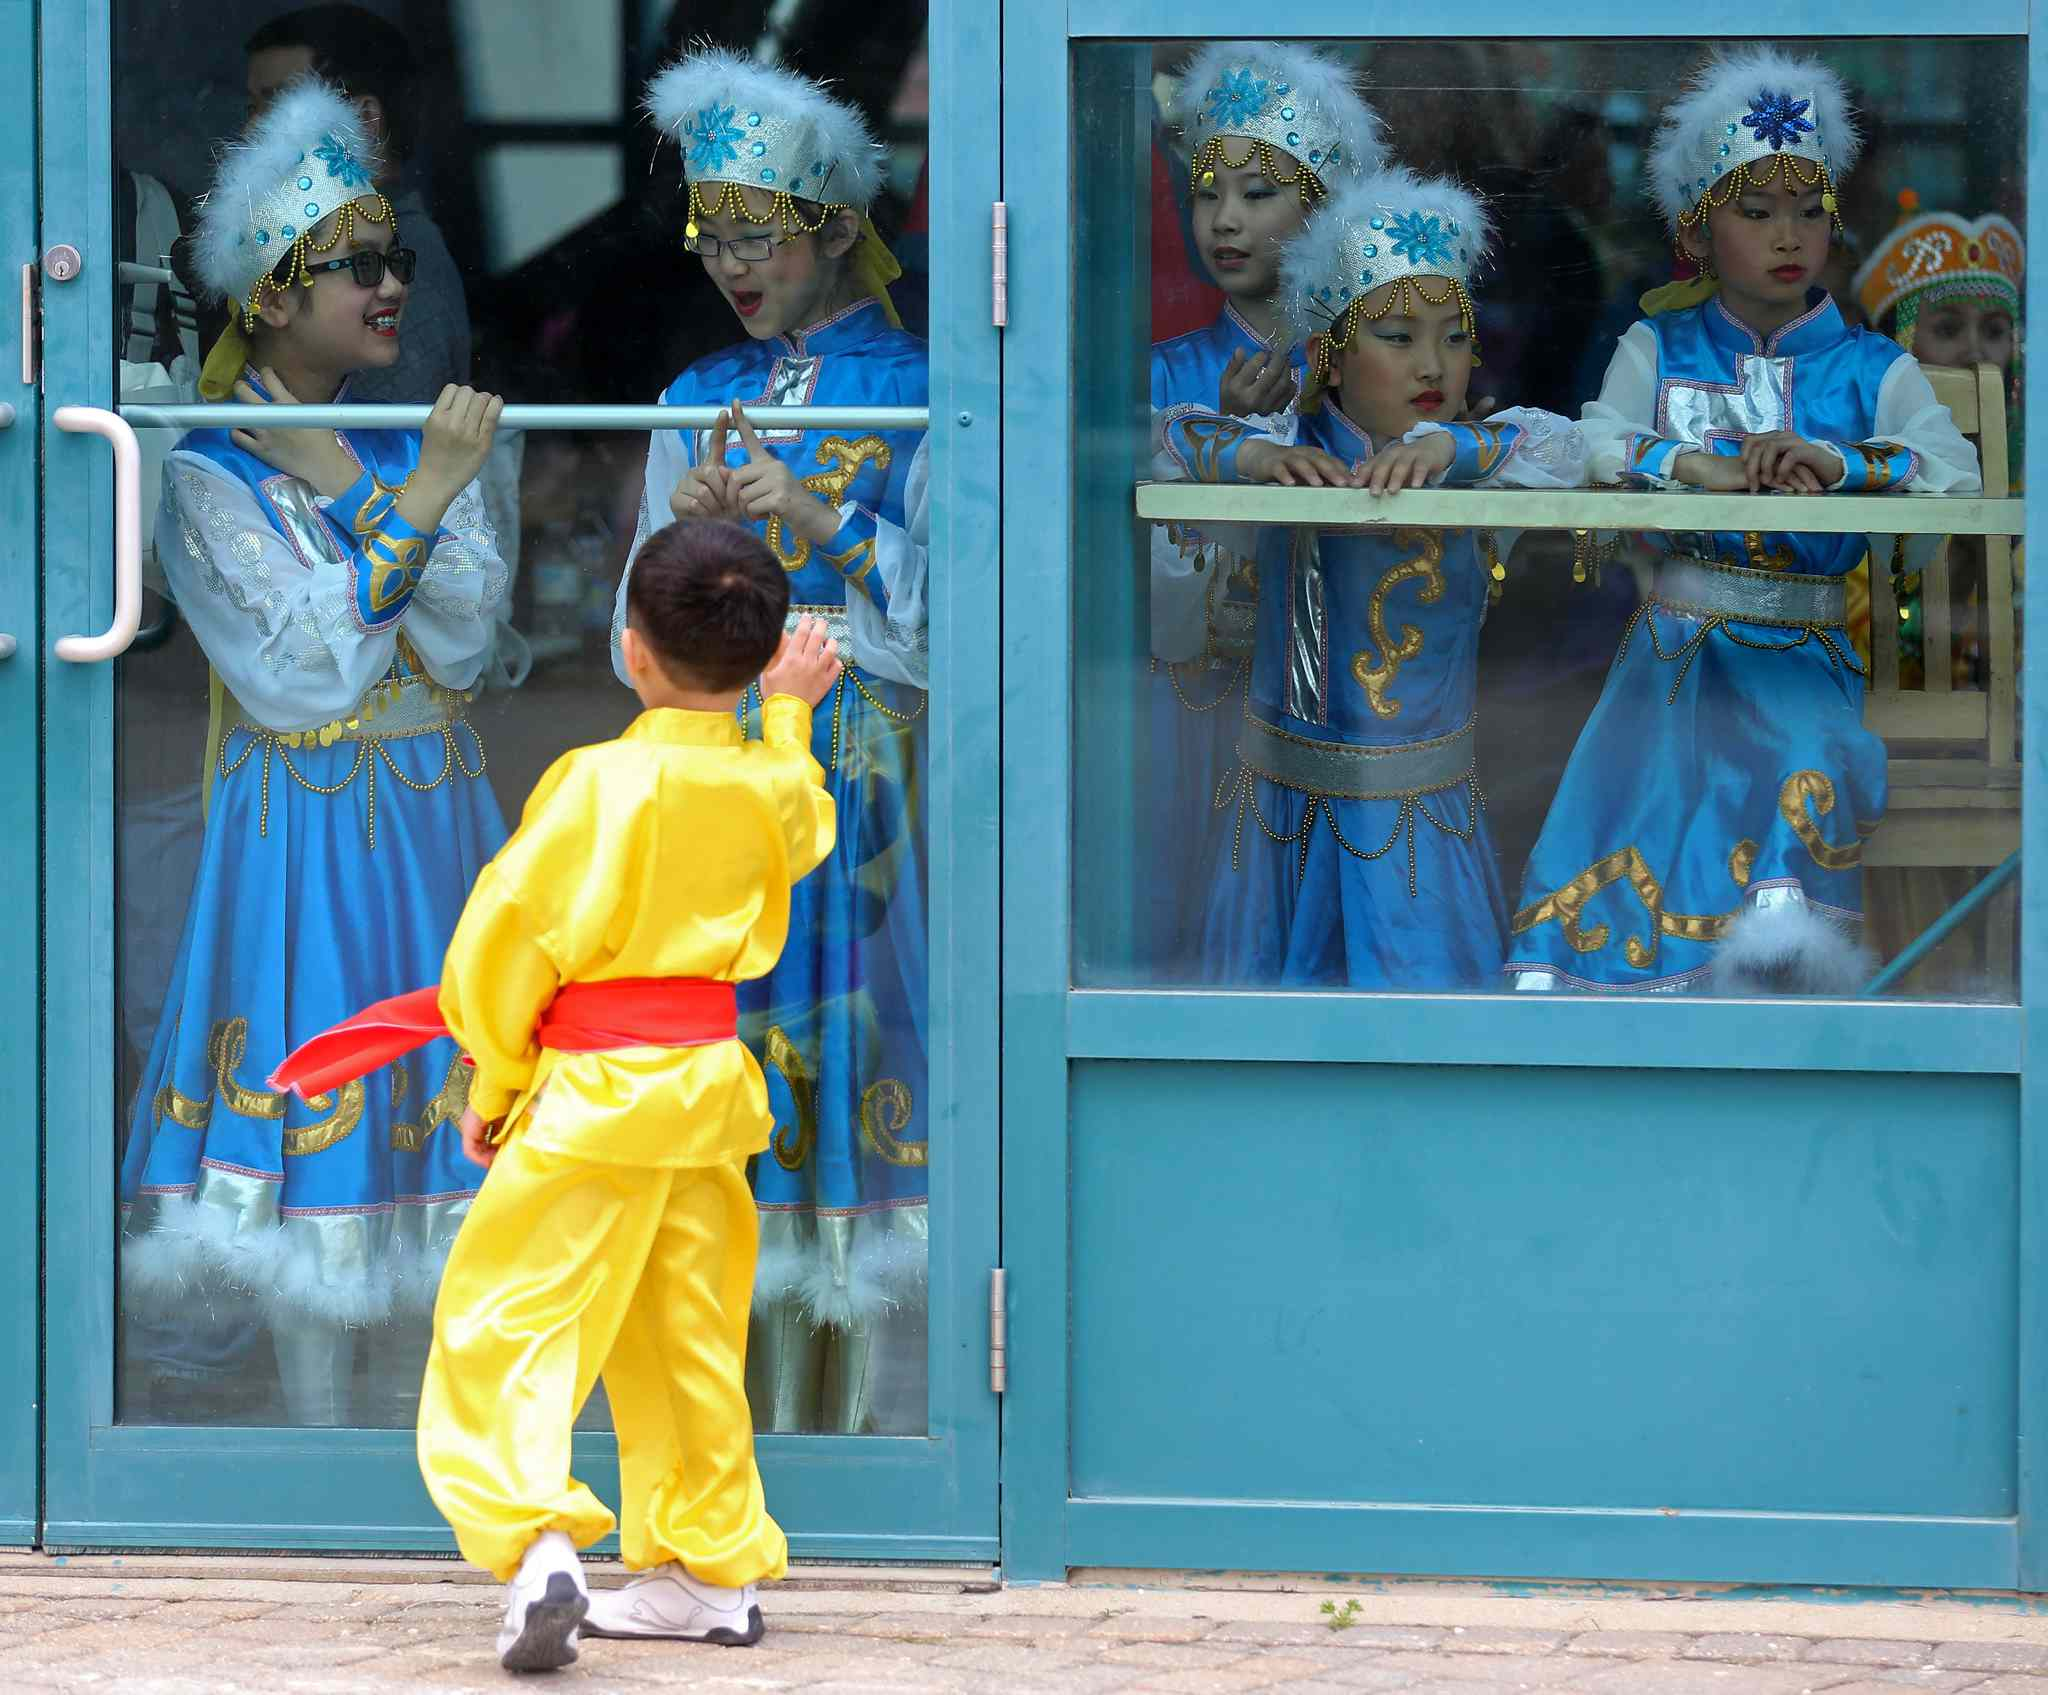 A young performer from the Great Wall Performing Arts school teases another group of performers prior to taking the stage during Asian Heritage Month celebrations at The Forks, Sunday.